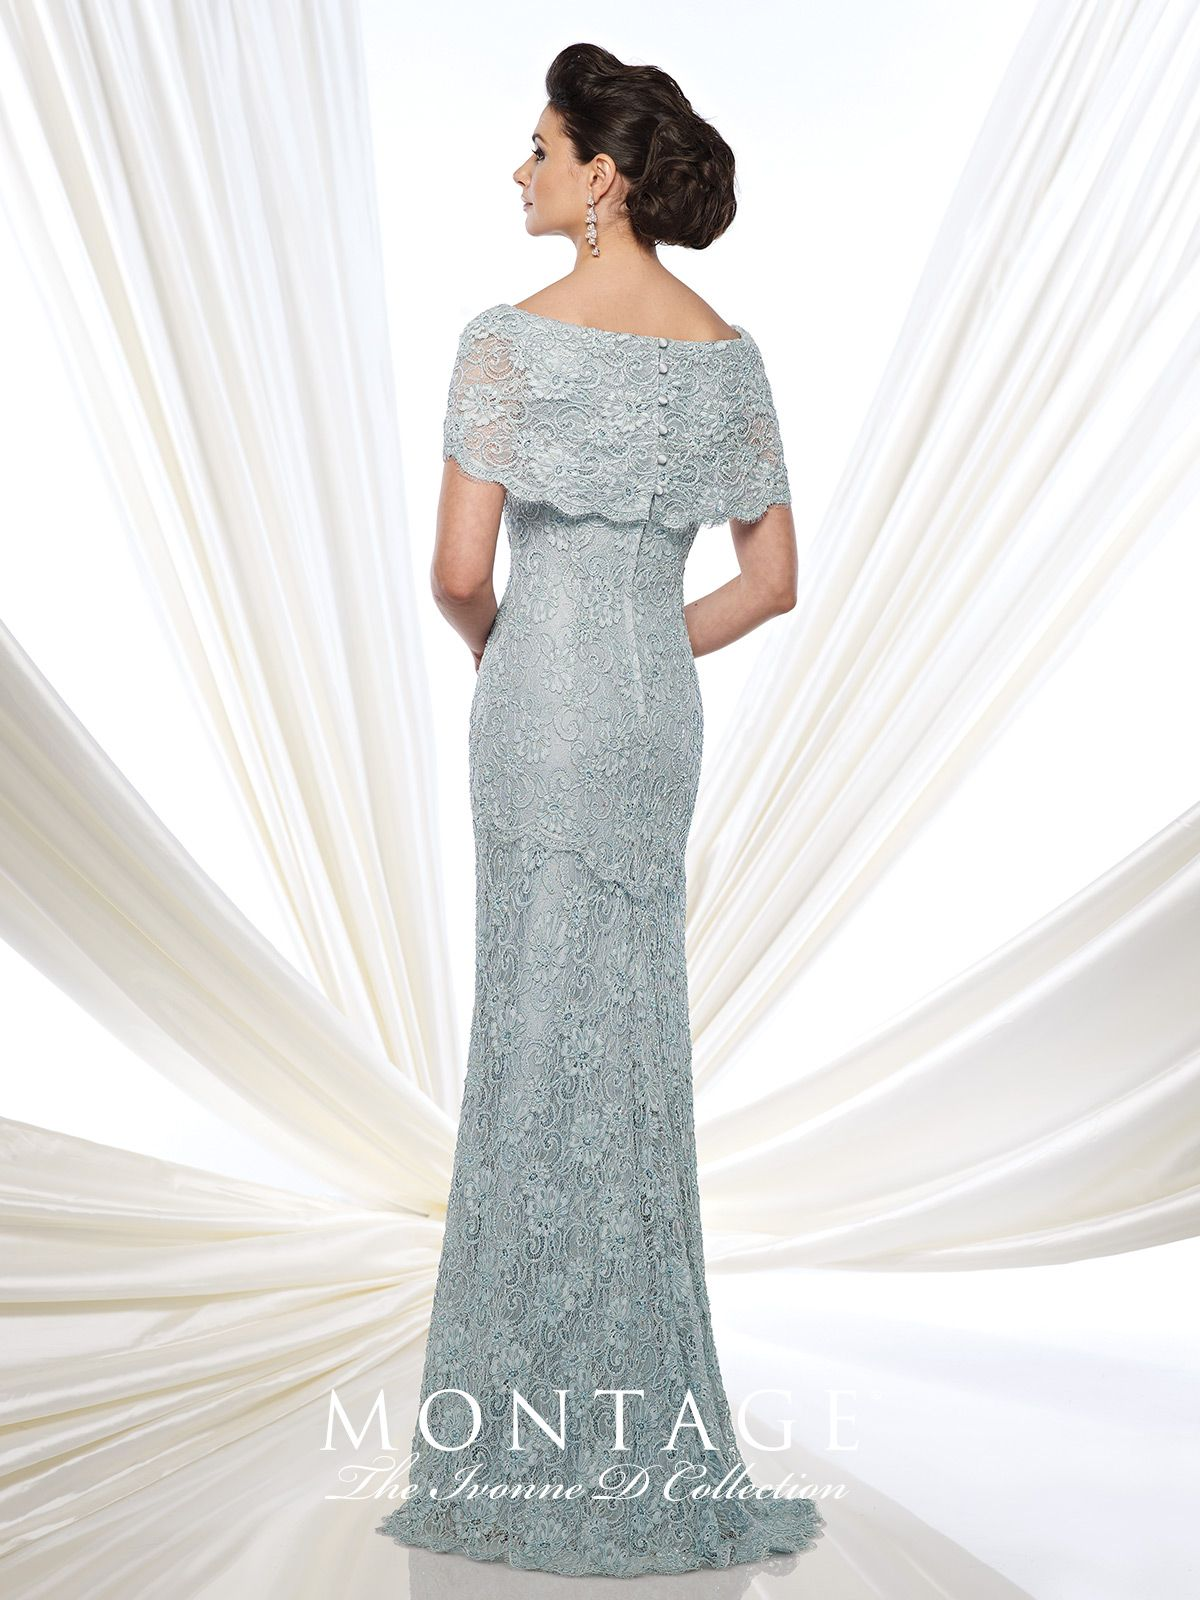 Lace Fit and Flare Gown With Short Sleeves - Ivonne D 215D03